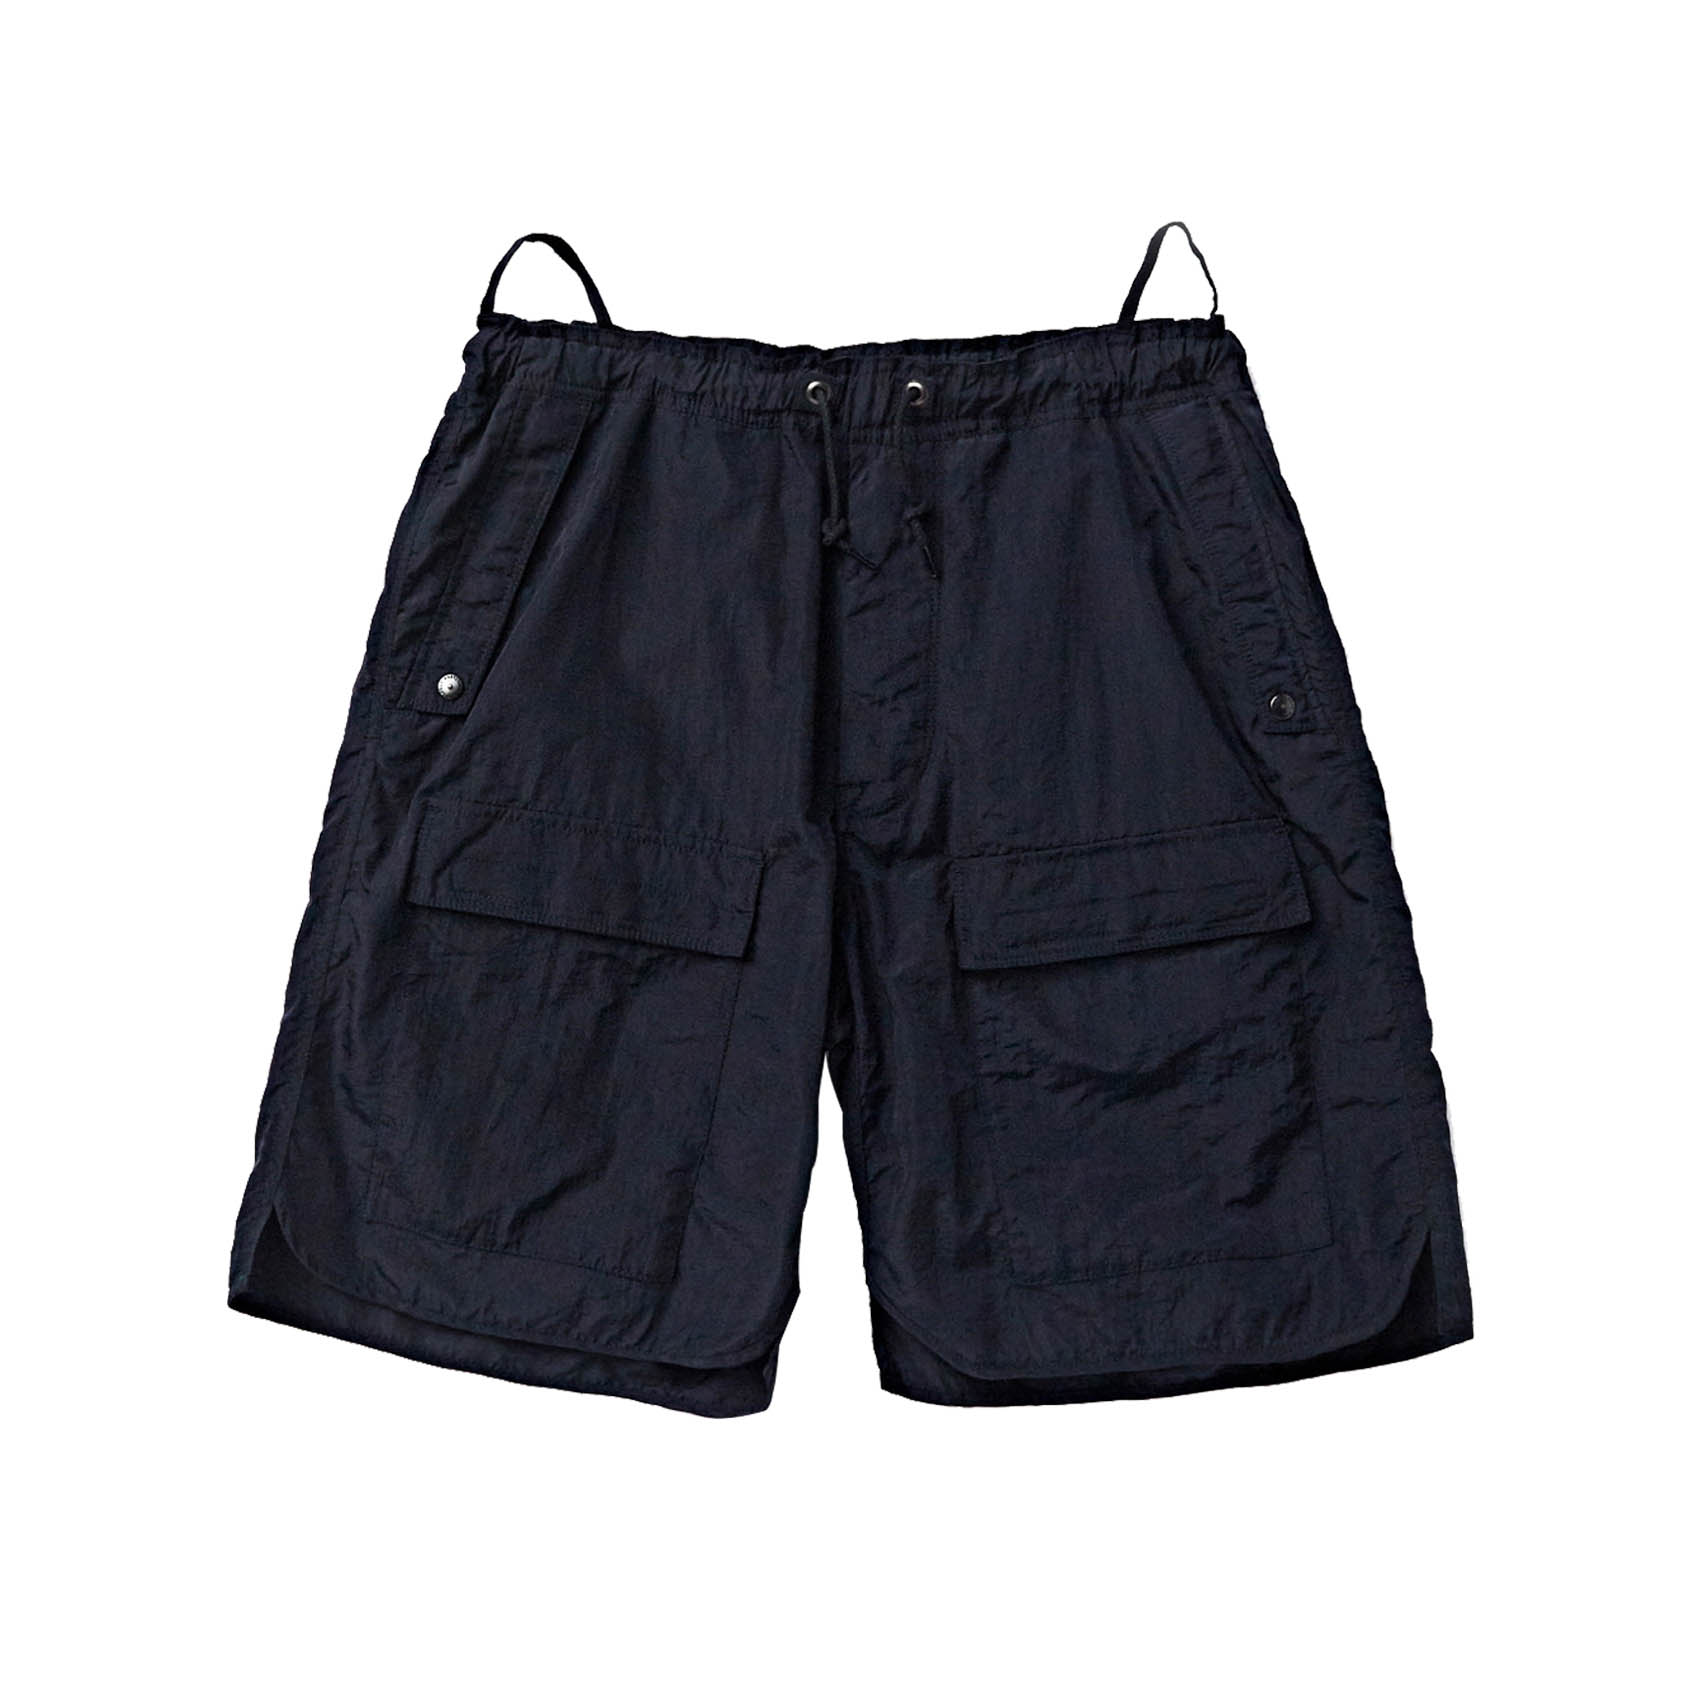 CBR SHORTS - NAVY NYLON WASHER